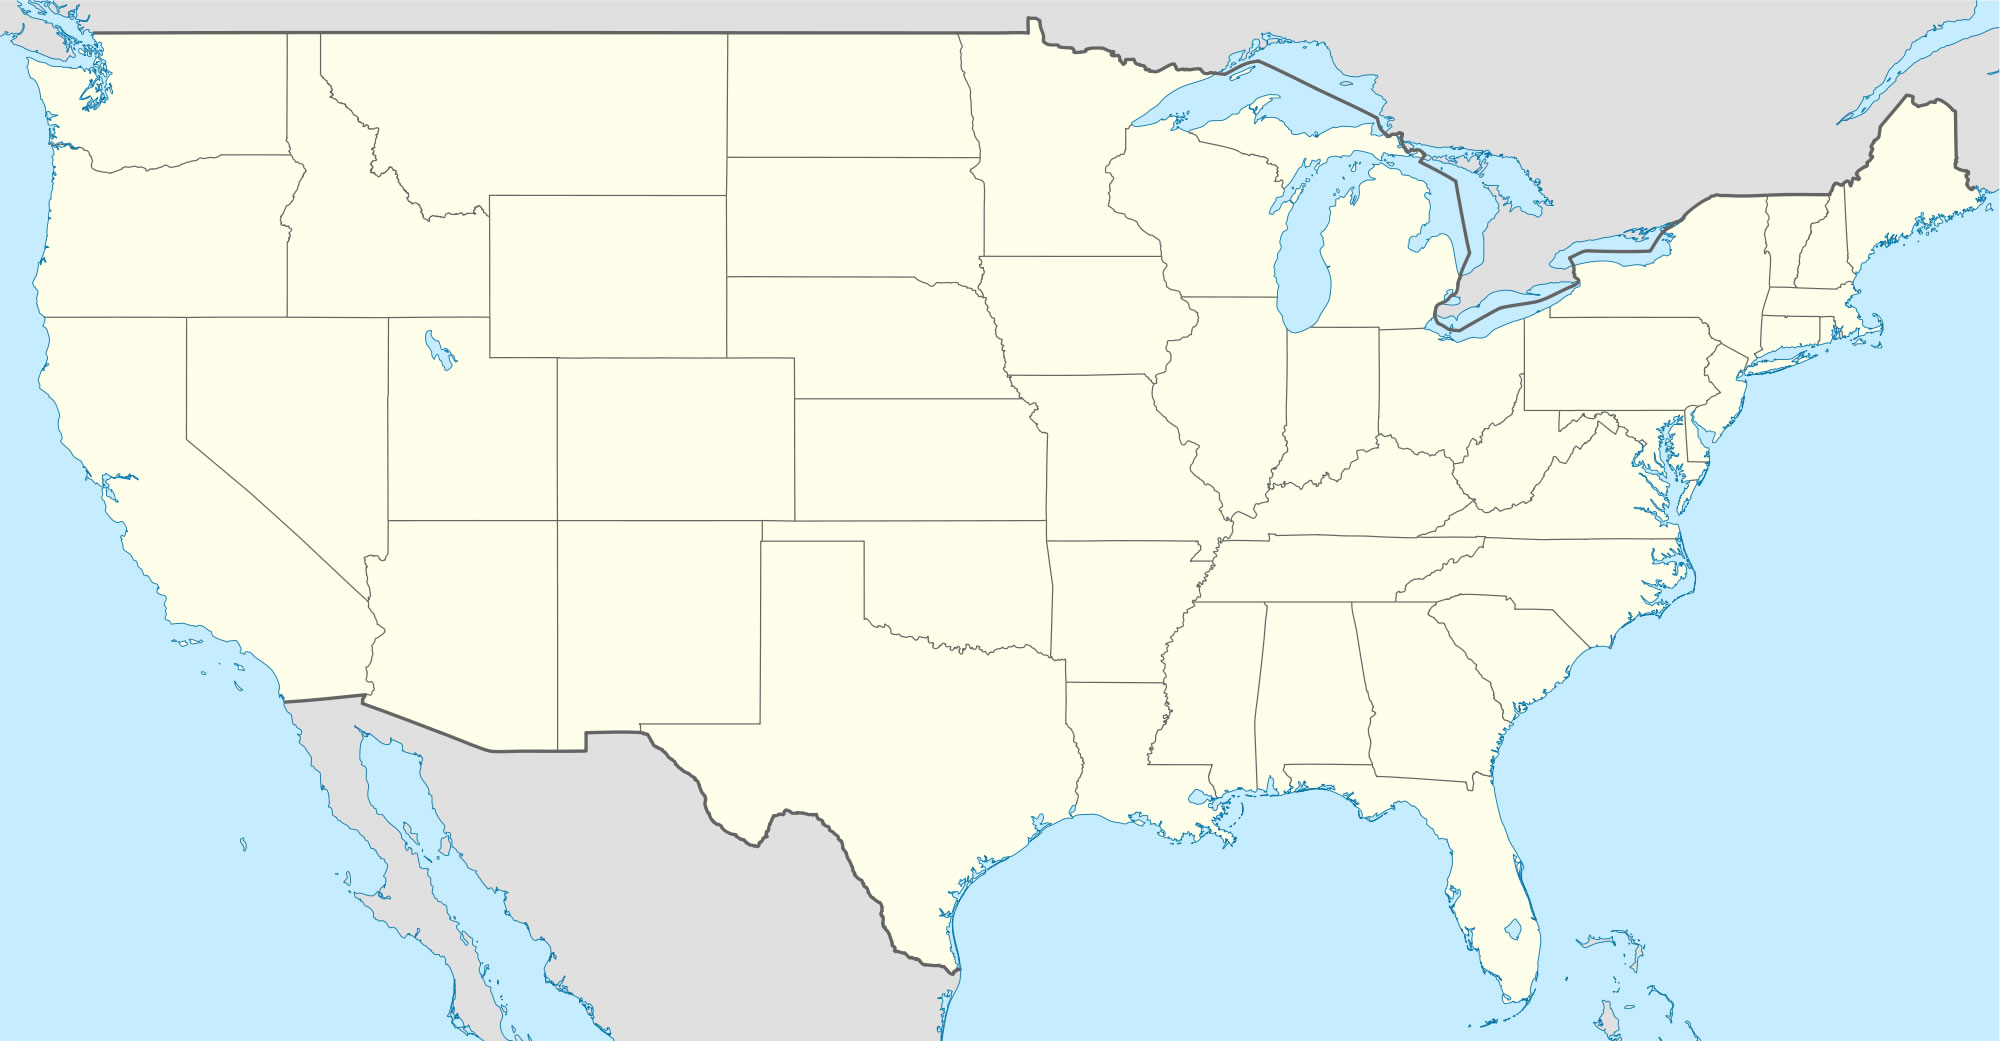 FileMap Of USA Showing State Namespng Wikimedia Commons US Maps - Free us map by mail